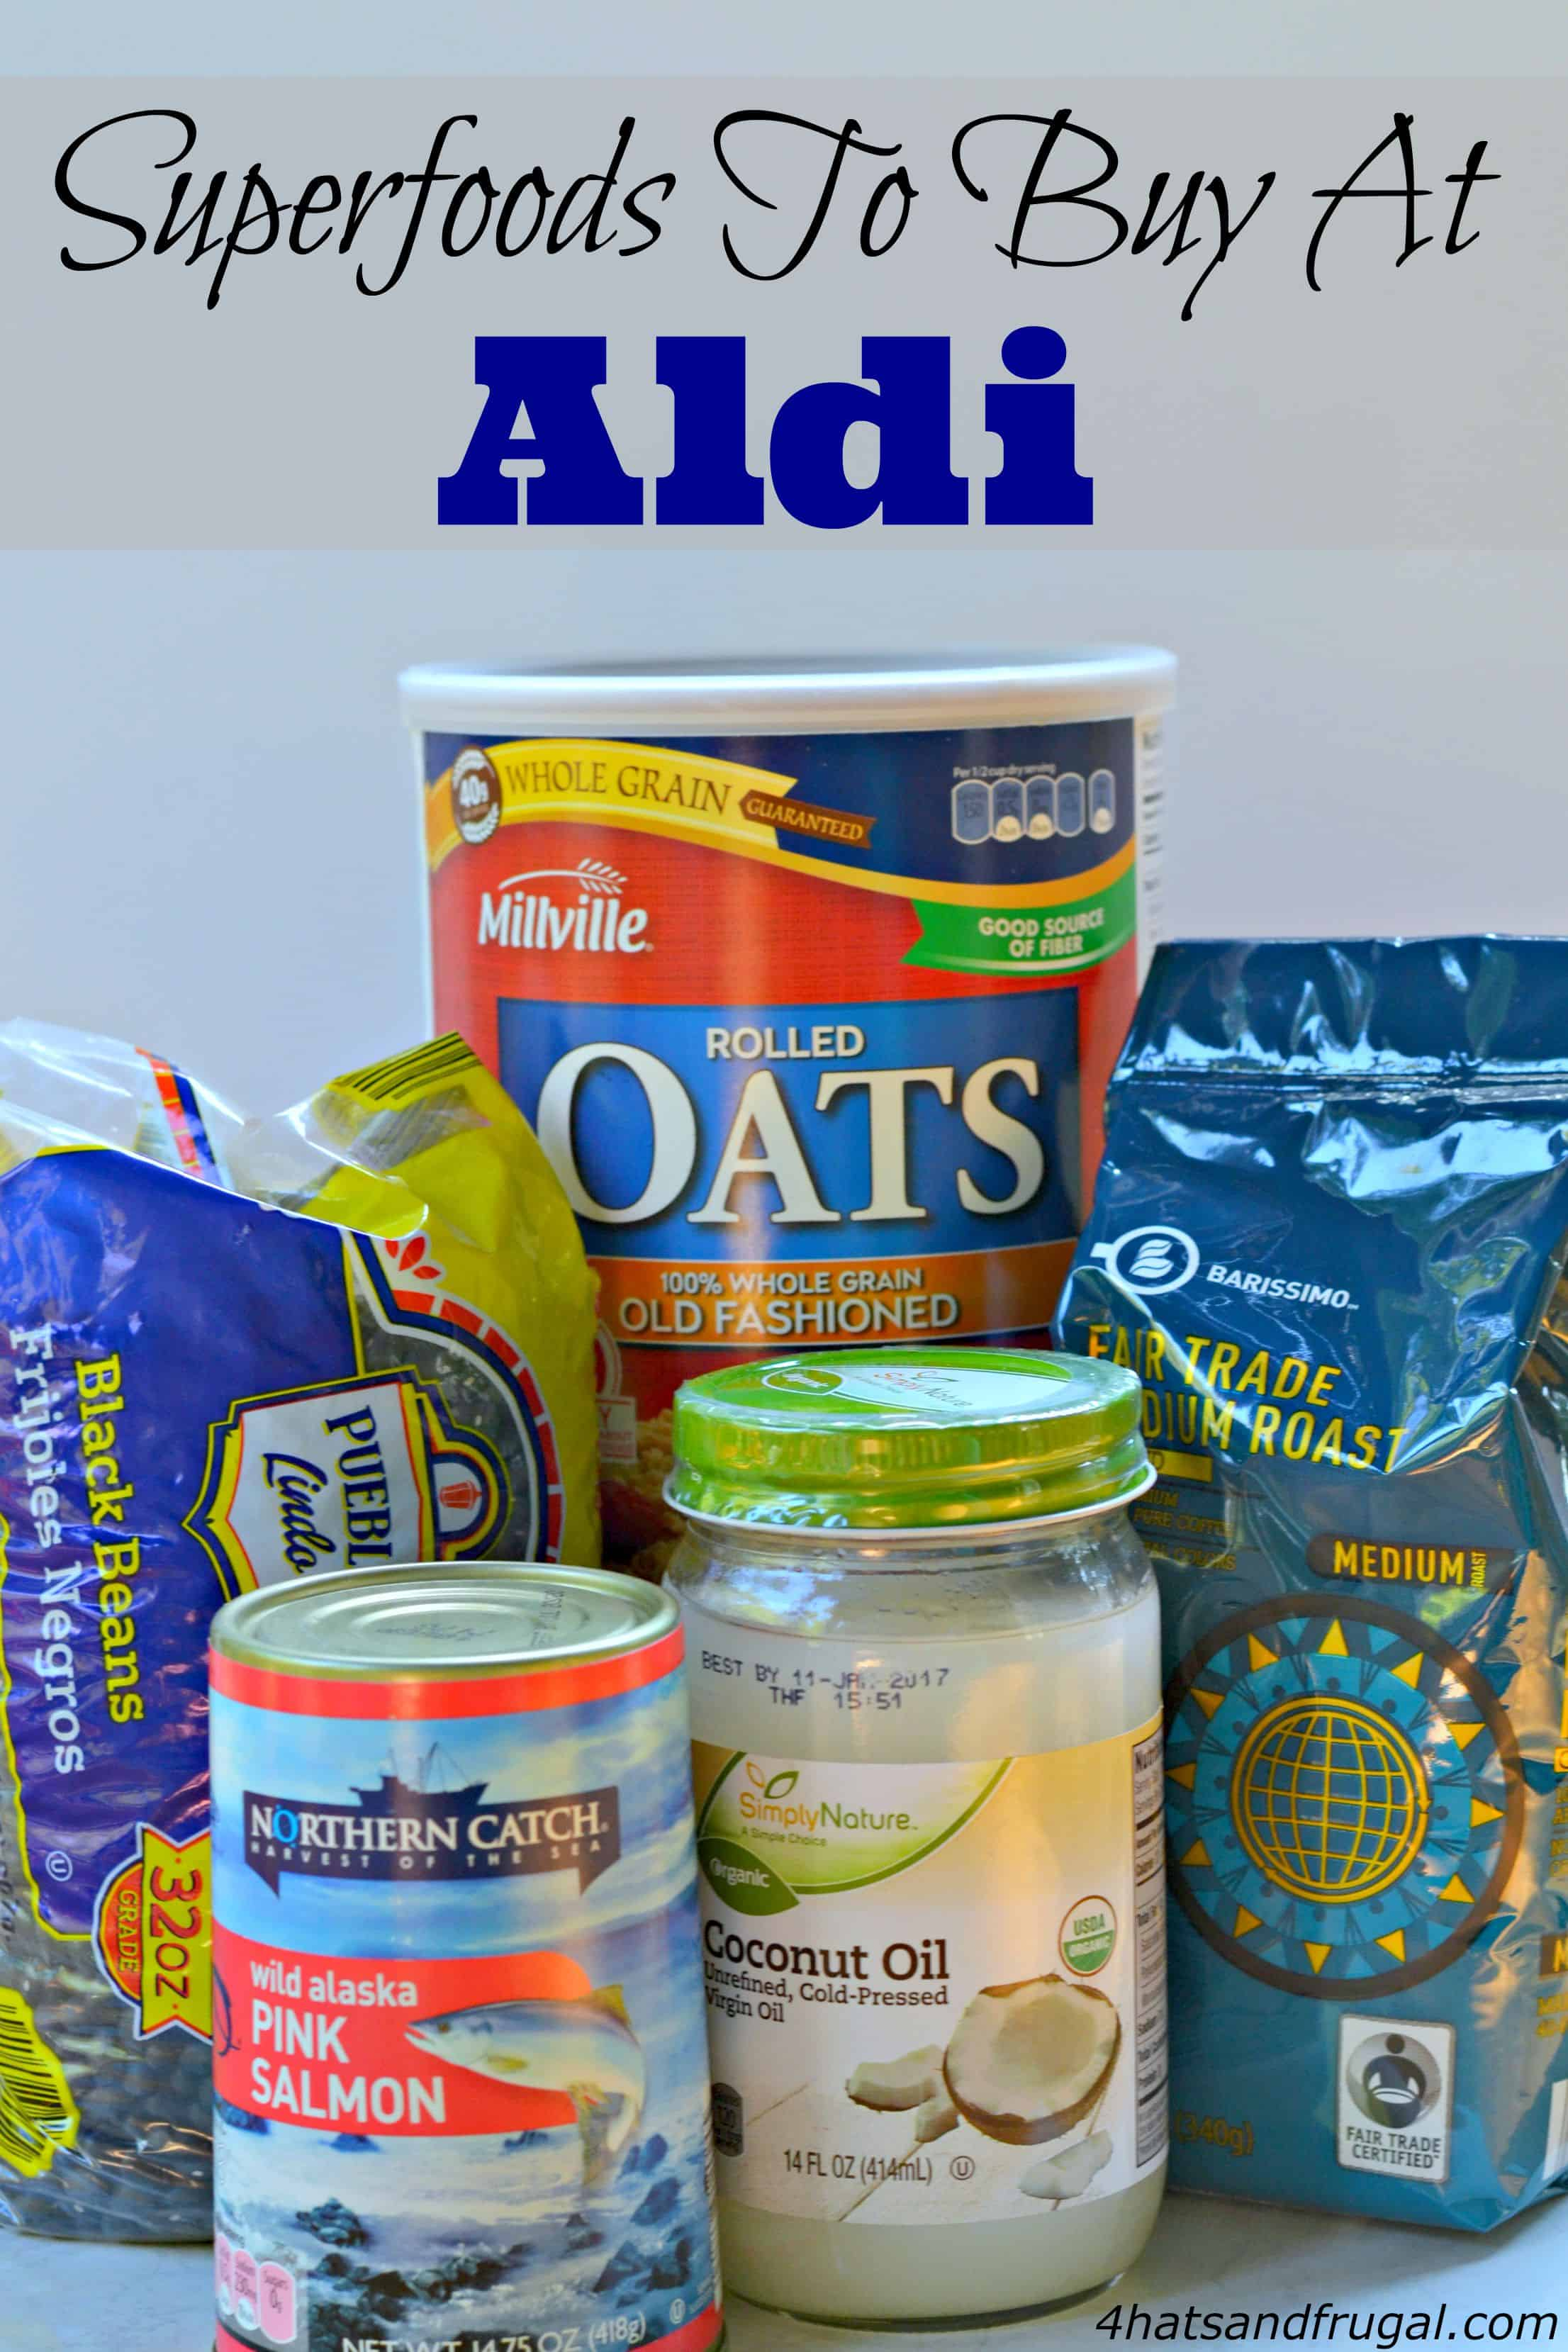 Buy Food Superfoods To Buy At Aldi 4 Hats And Frugal